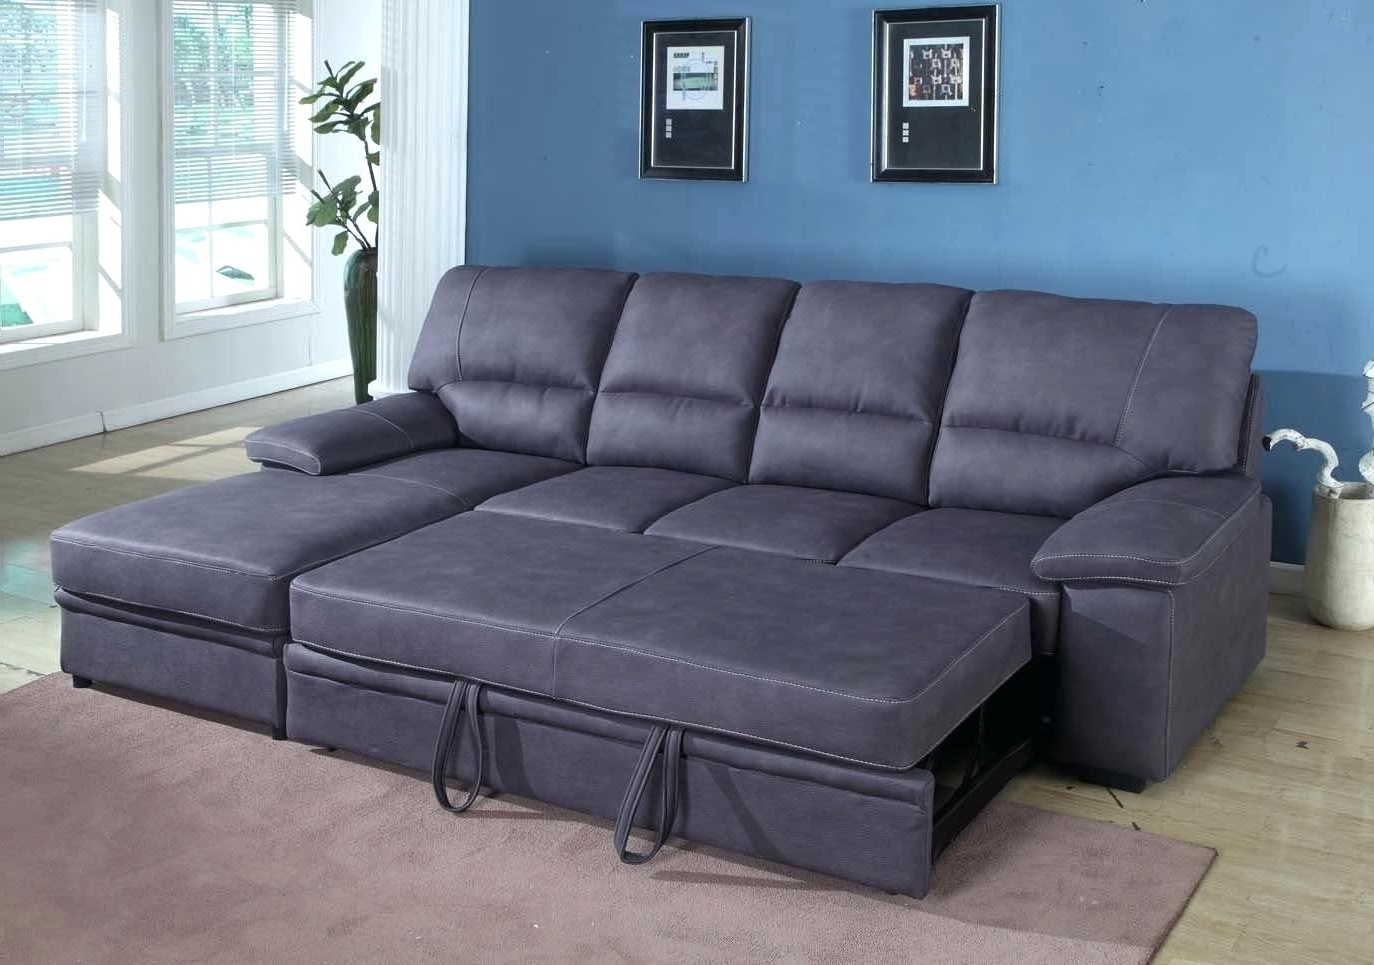 Most Recently Released Decoration: Small Sofa Beds For Spaces Image Of Sectional Sofas Regarding Sectional Sofas In Philippines (View 10 of 20)